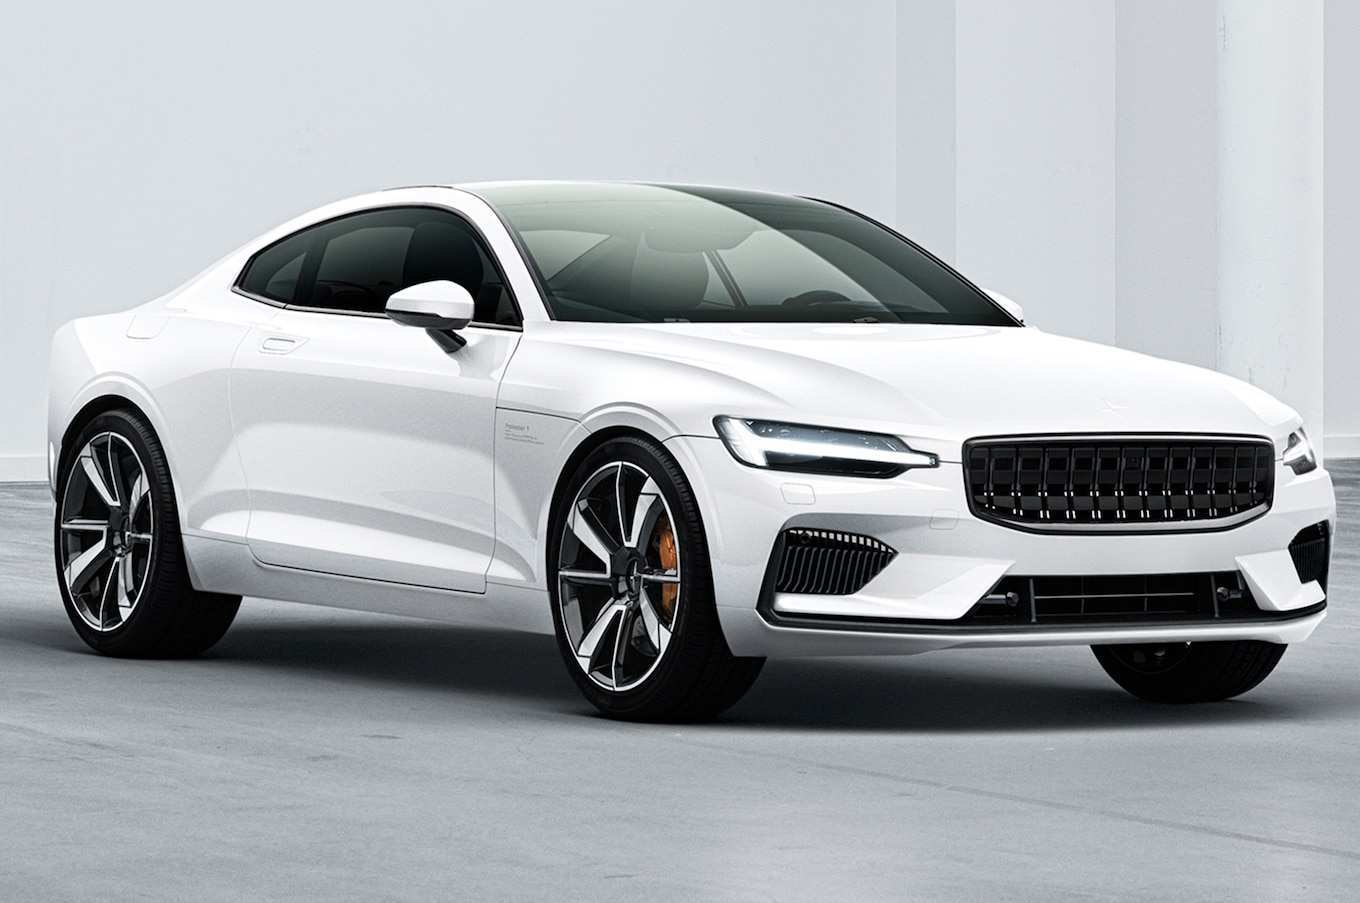 28 Best Review Volvo Polestar 2020 Configurations by Volvo Polestar 2020